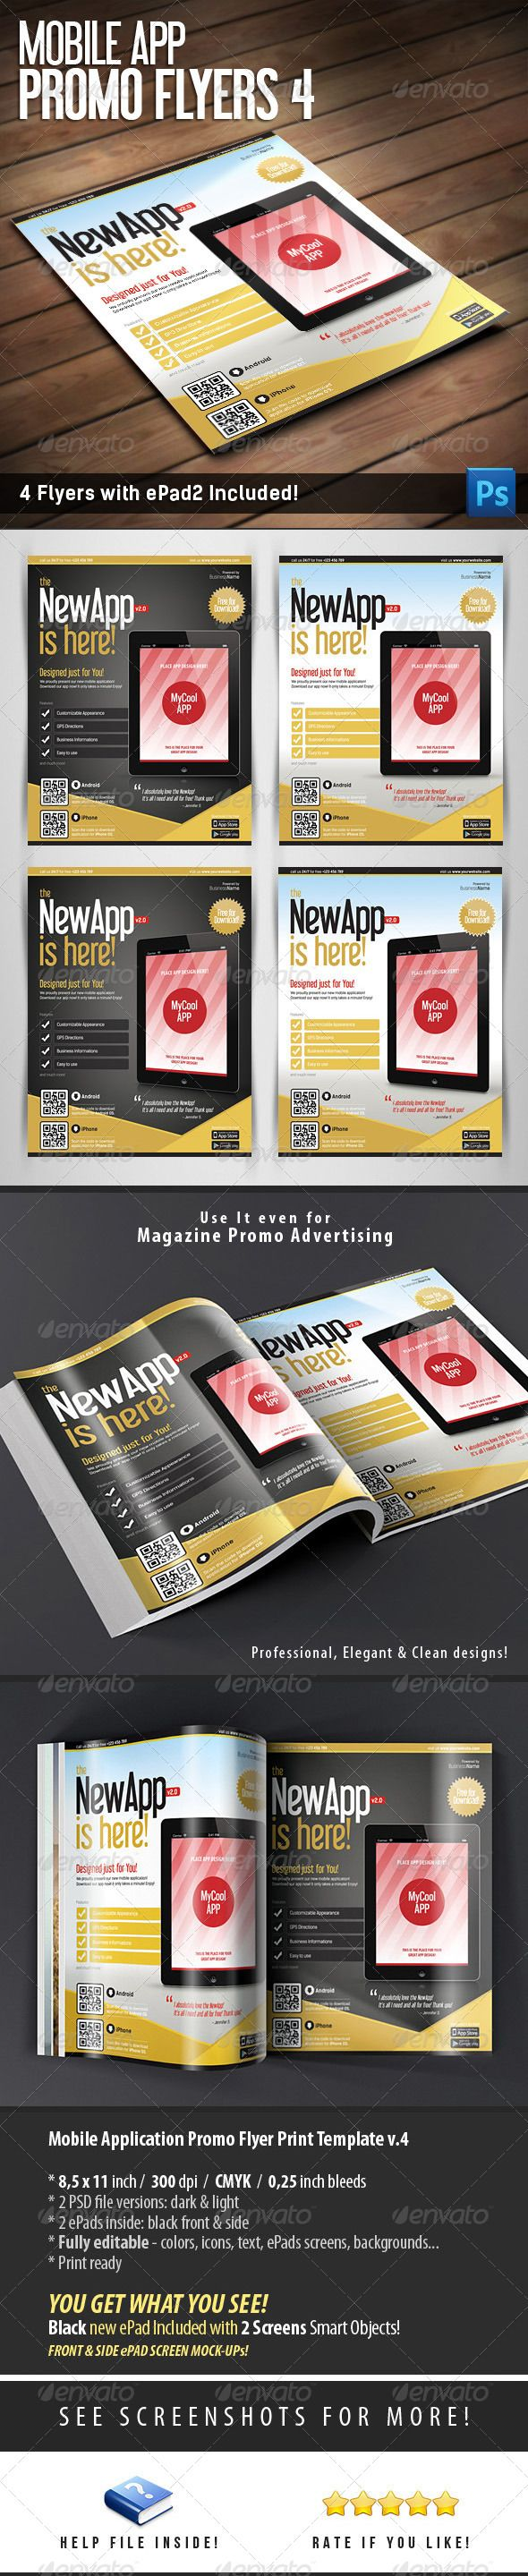 Mobile App Flyers Template v.4 | Pinterest